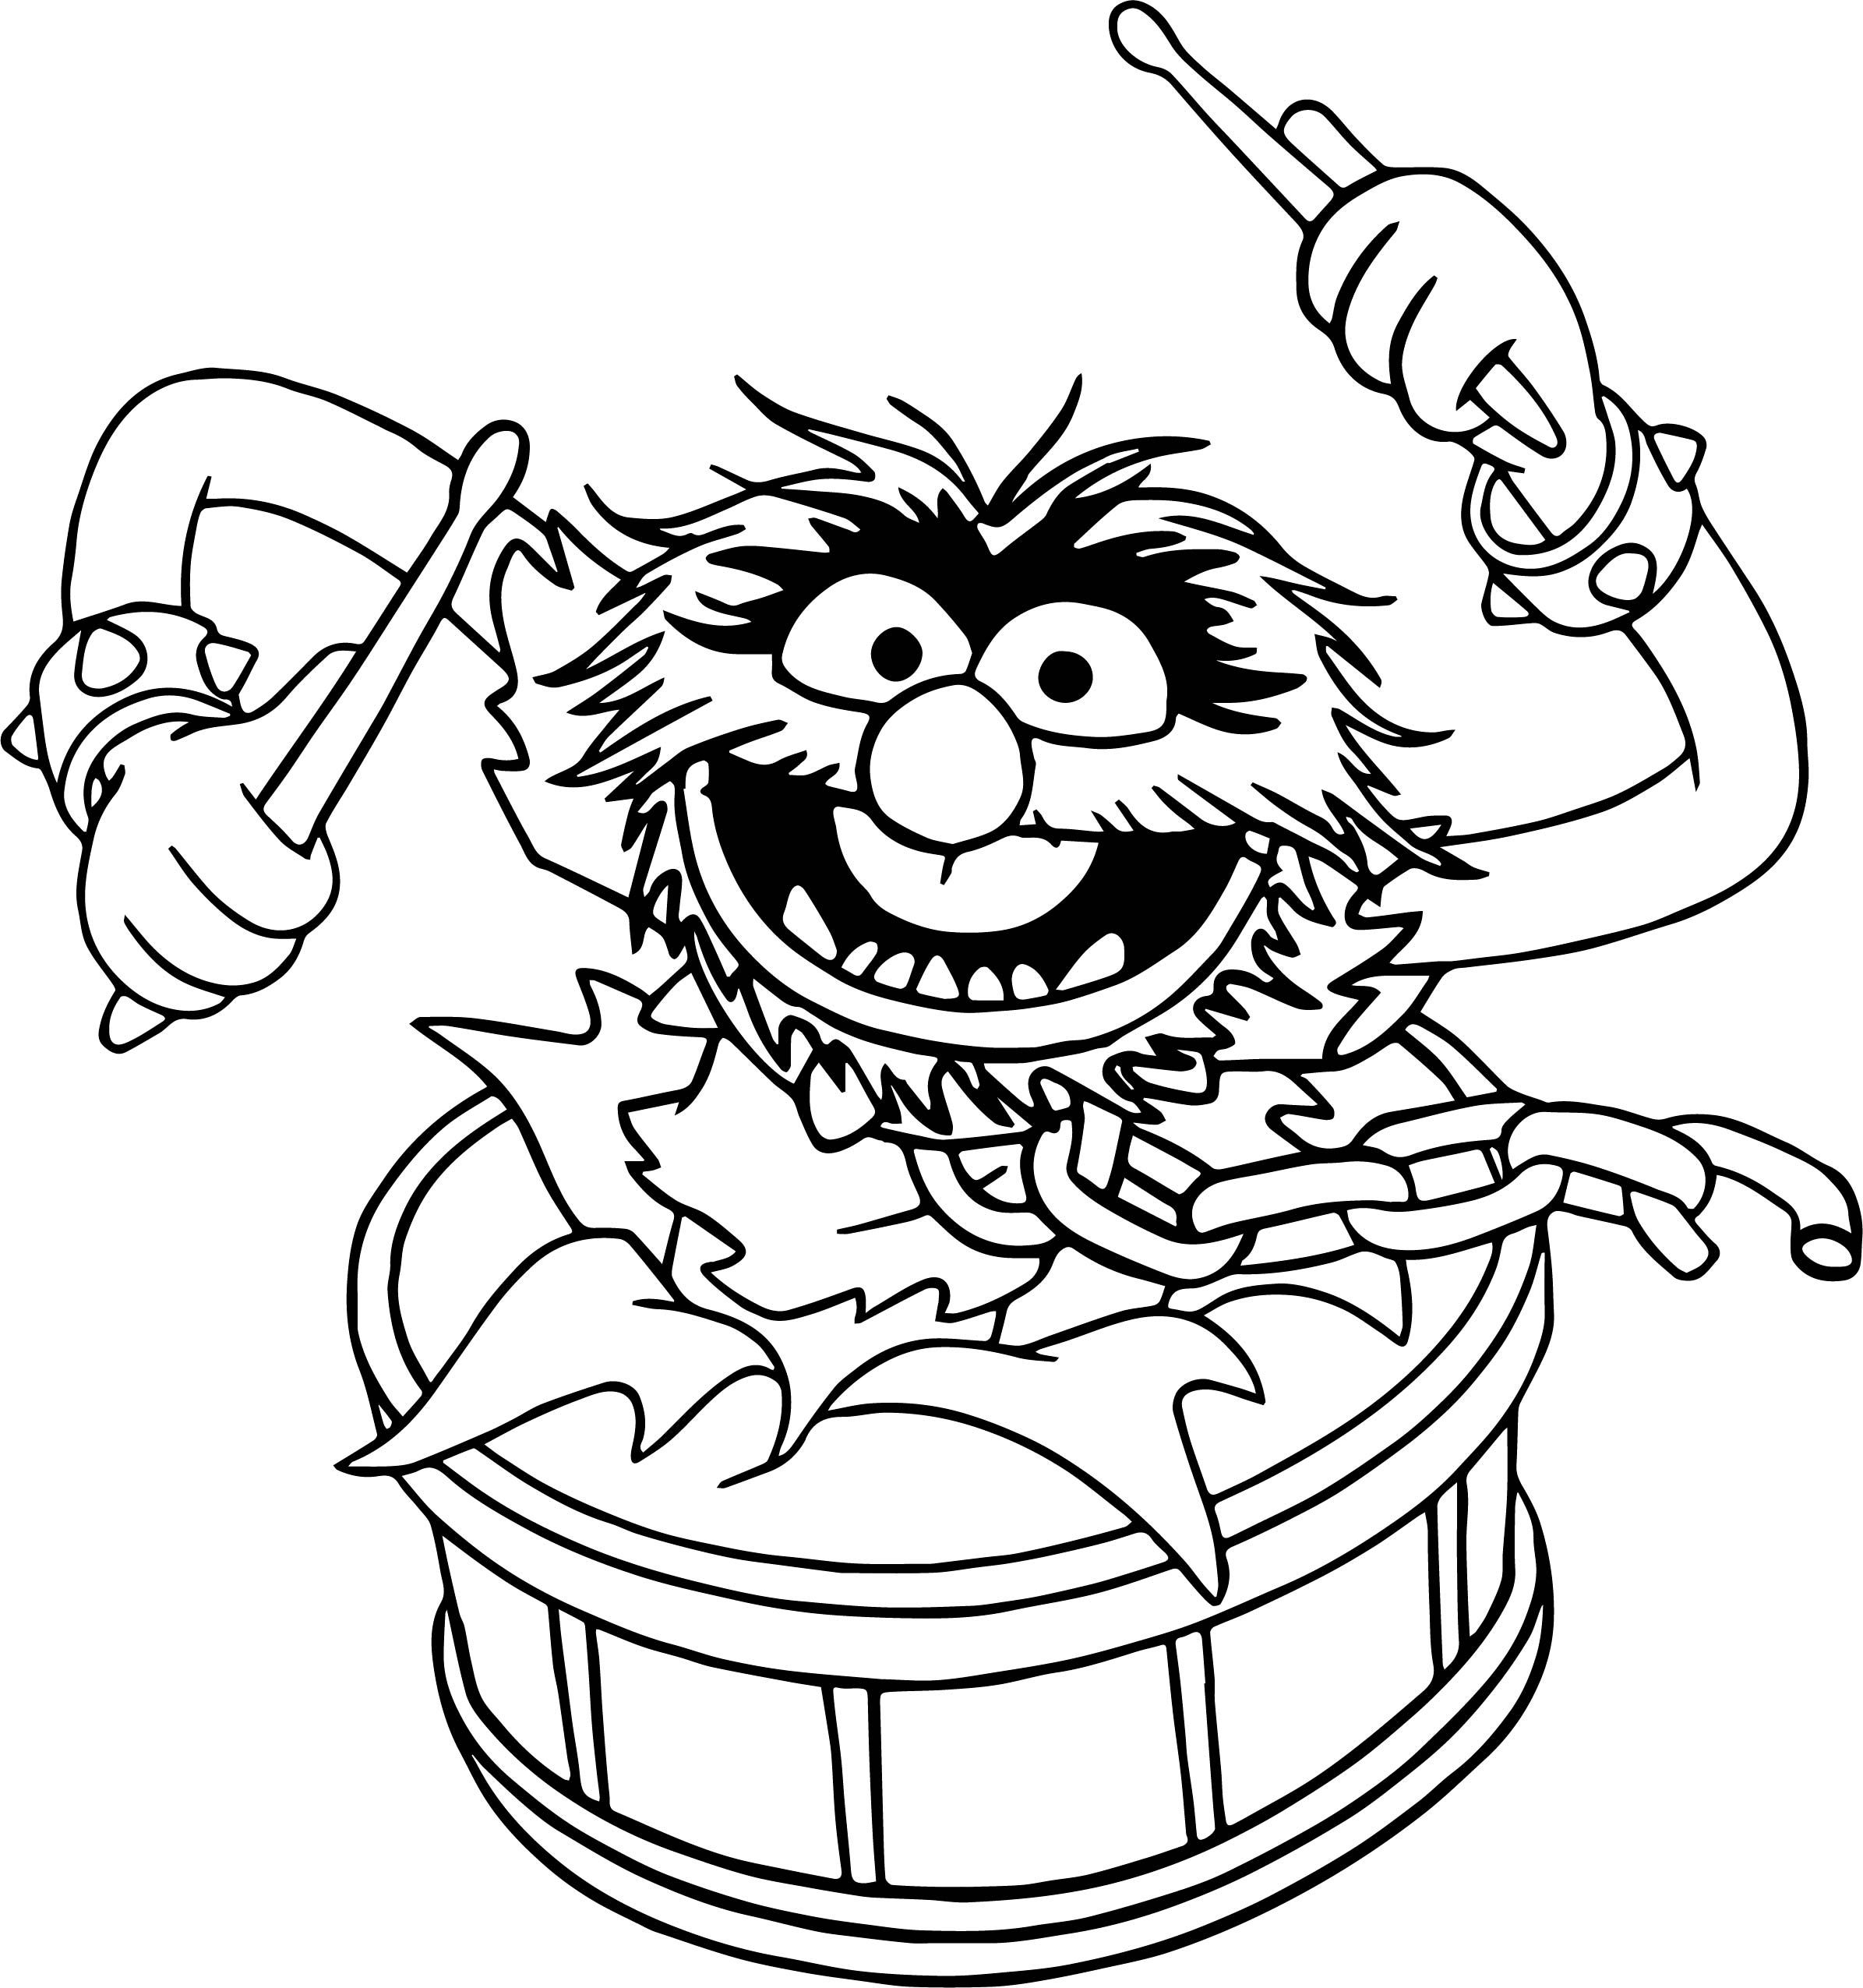 The Muppets Animal Song Coloring Pages.